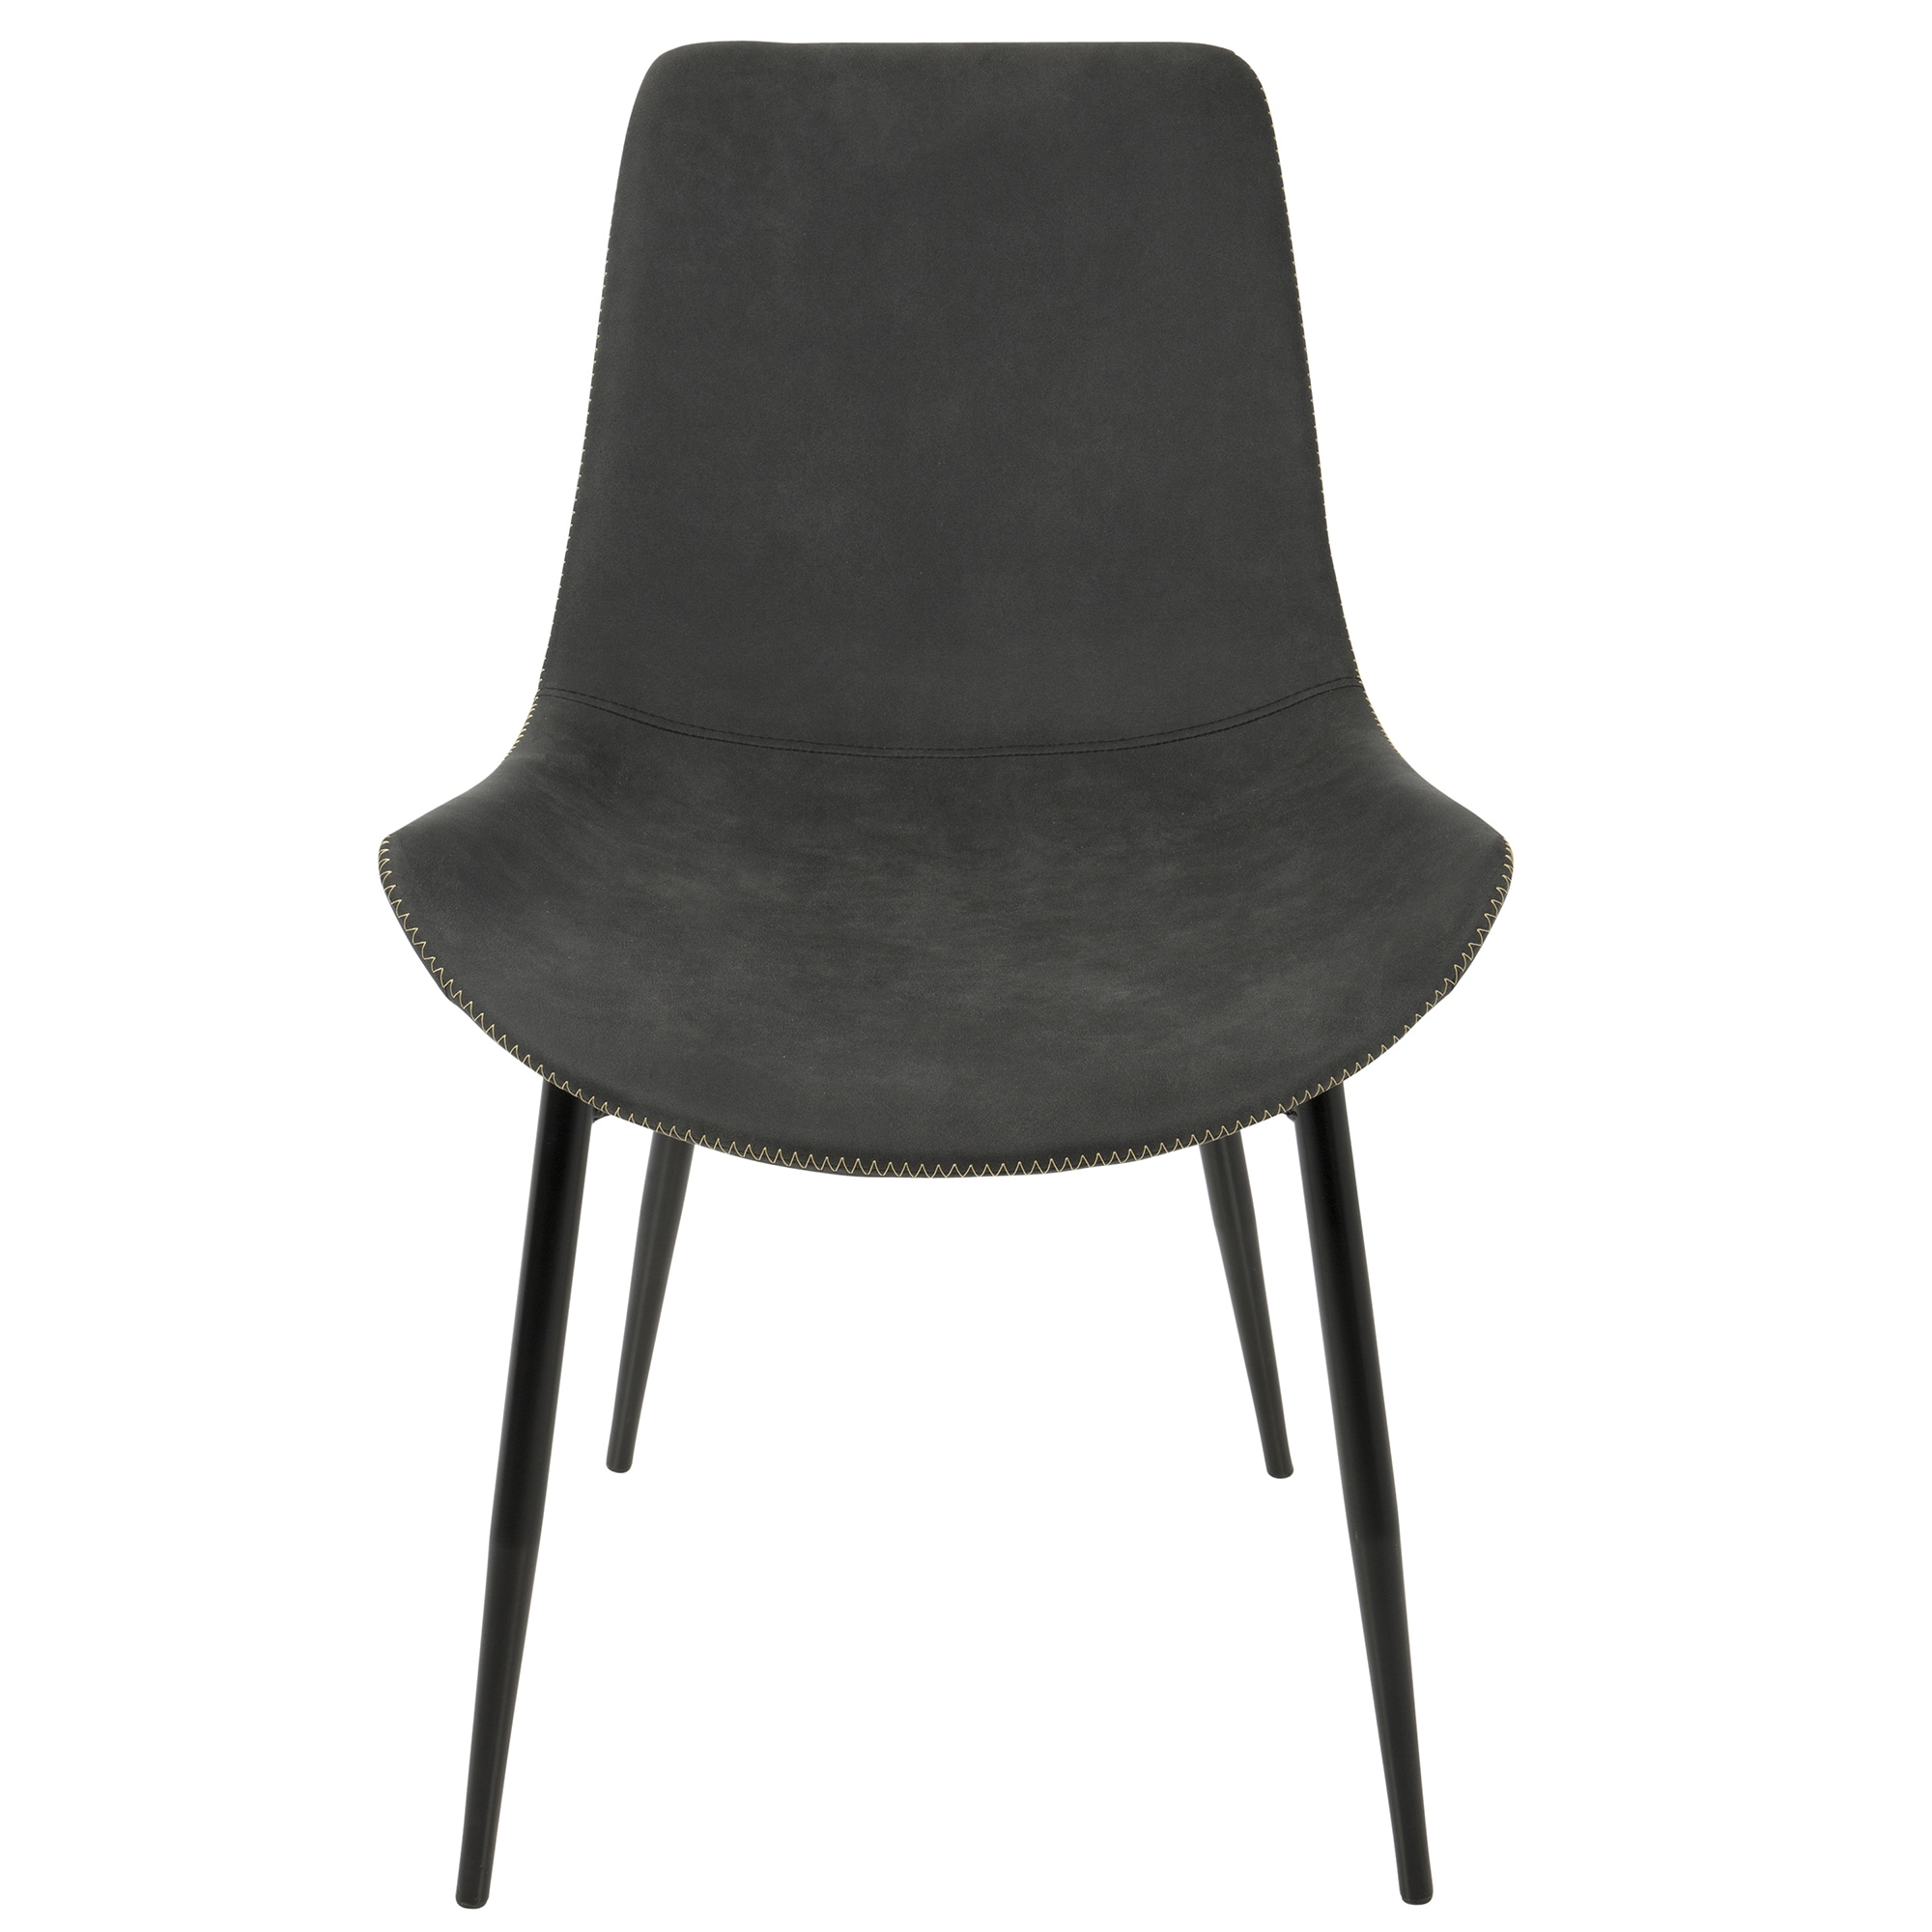 lumisource duke black metal industrial dining chairs (set of )  freeshipping today  overstockcom  . lumisource duke black metal industrial dining chairs (set of